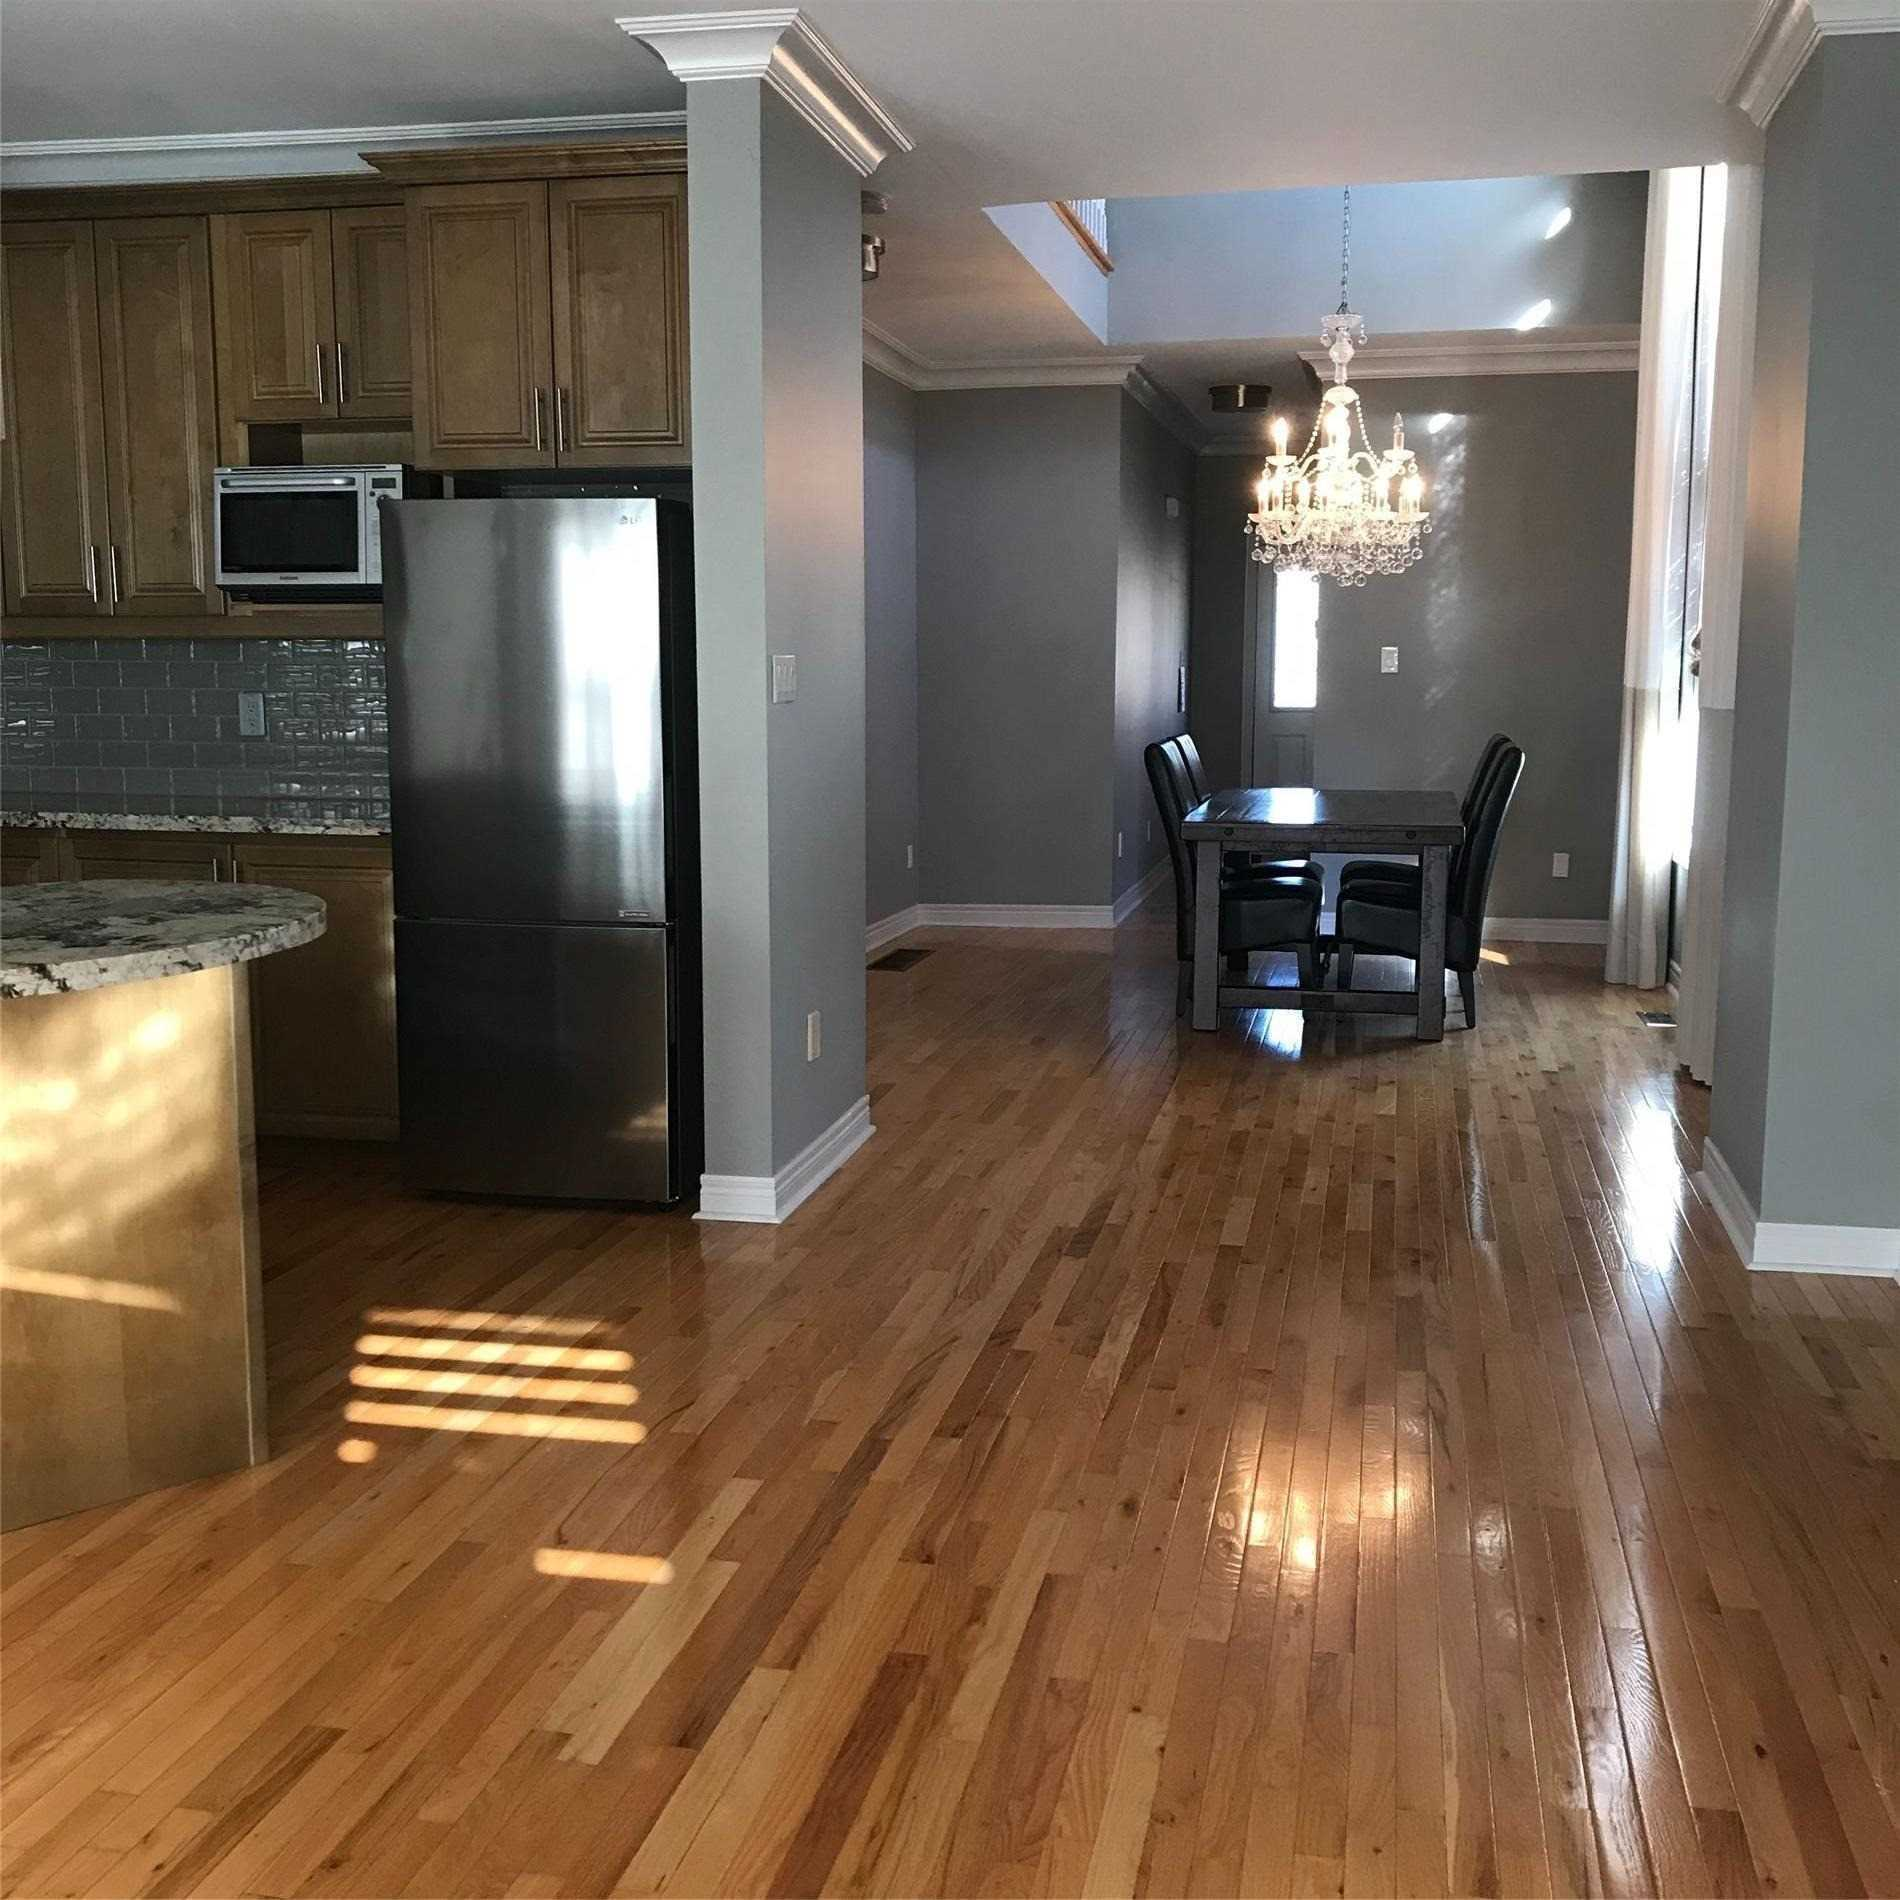 Att/row/twnhouse For Lease In Richmond Hill